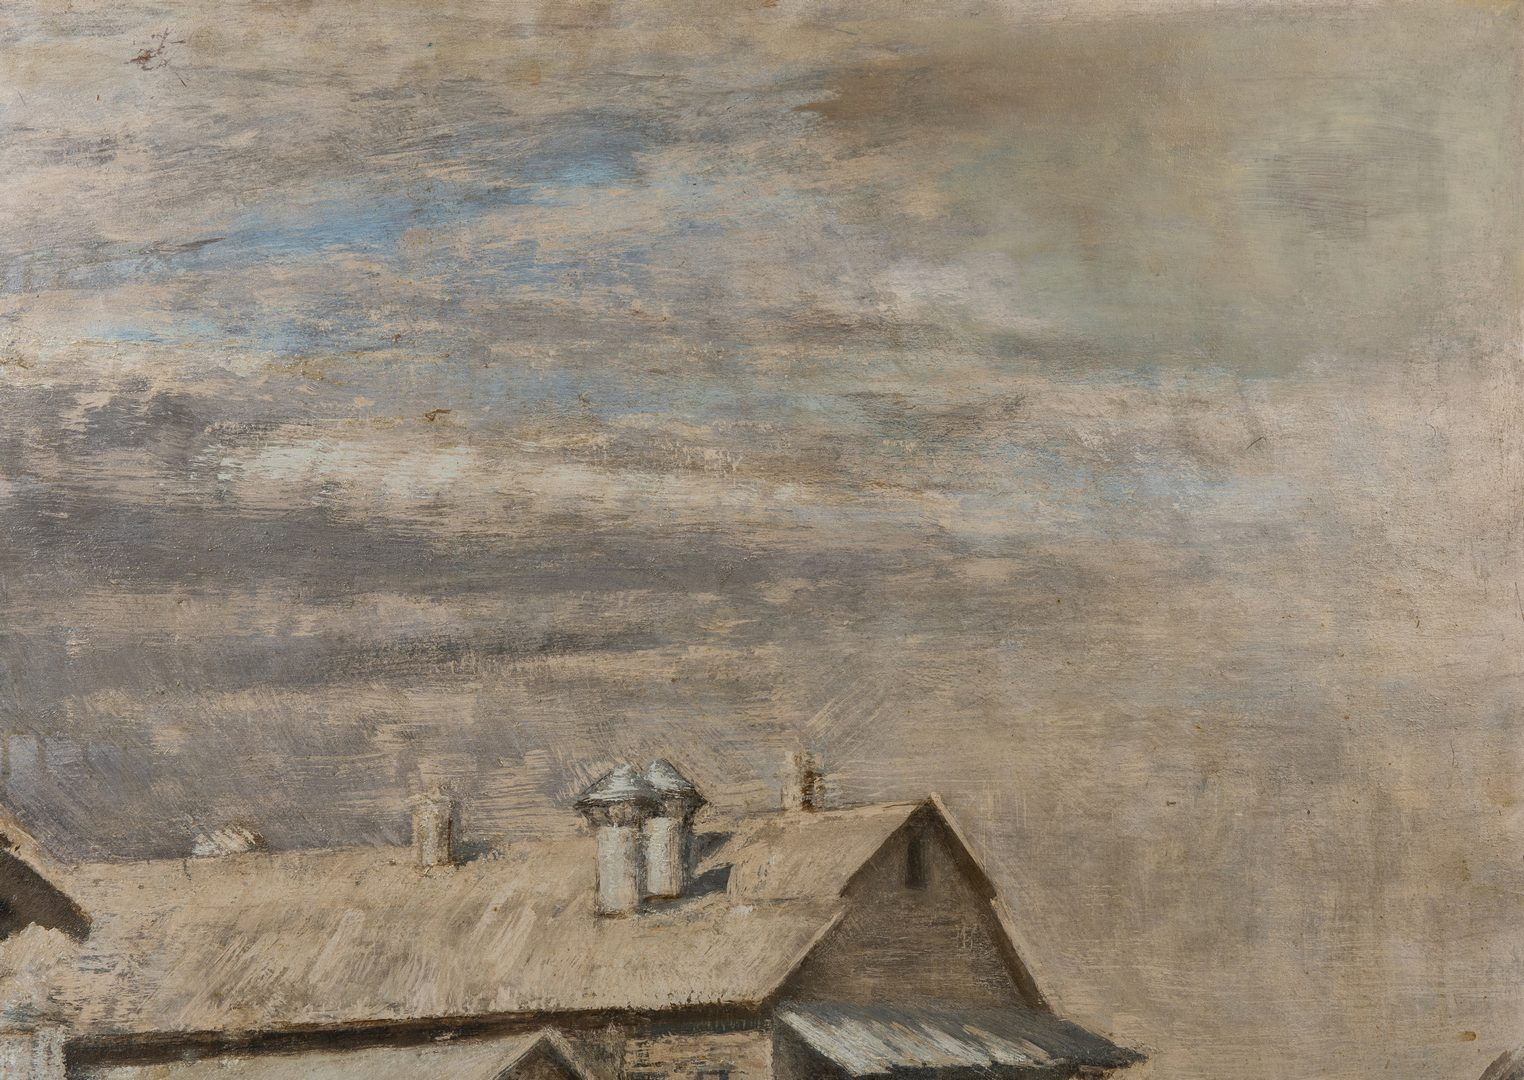 Lot 423: Gaspere Ruffolo O/B, Cotton Mill, Double Sided Painting